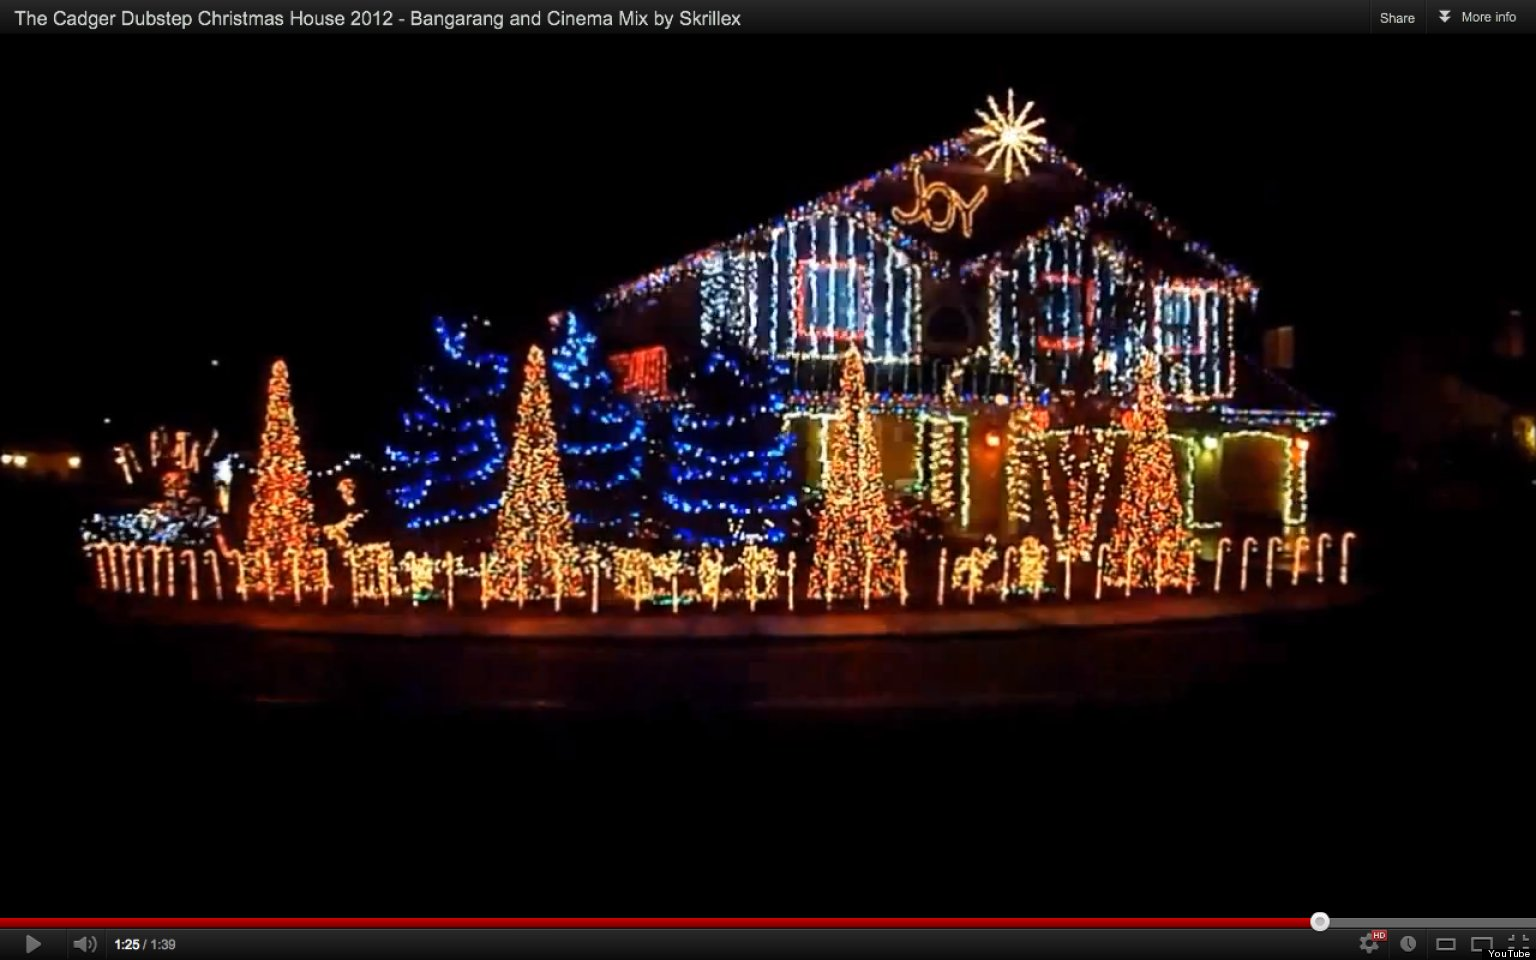 Dubstep Christmas Light Show At Cadger Family Home Sets 40,000 Lights To  Skrillex (VIDEO) | HuffPost